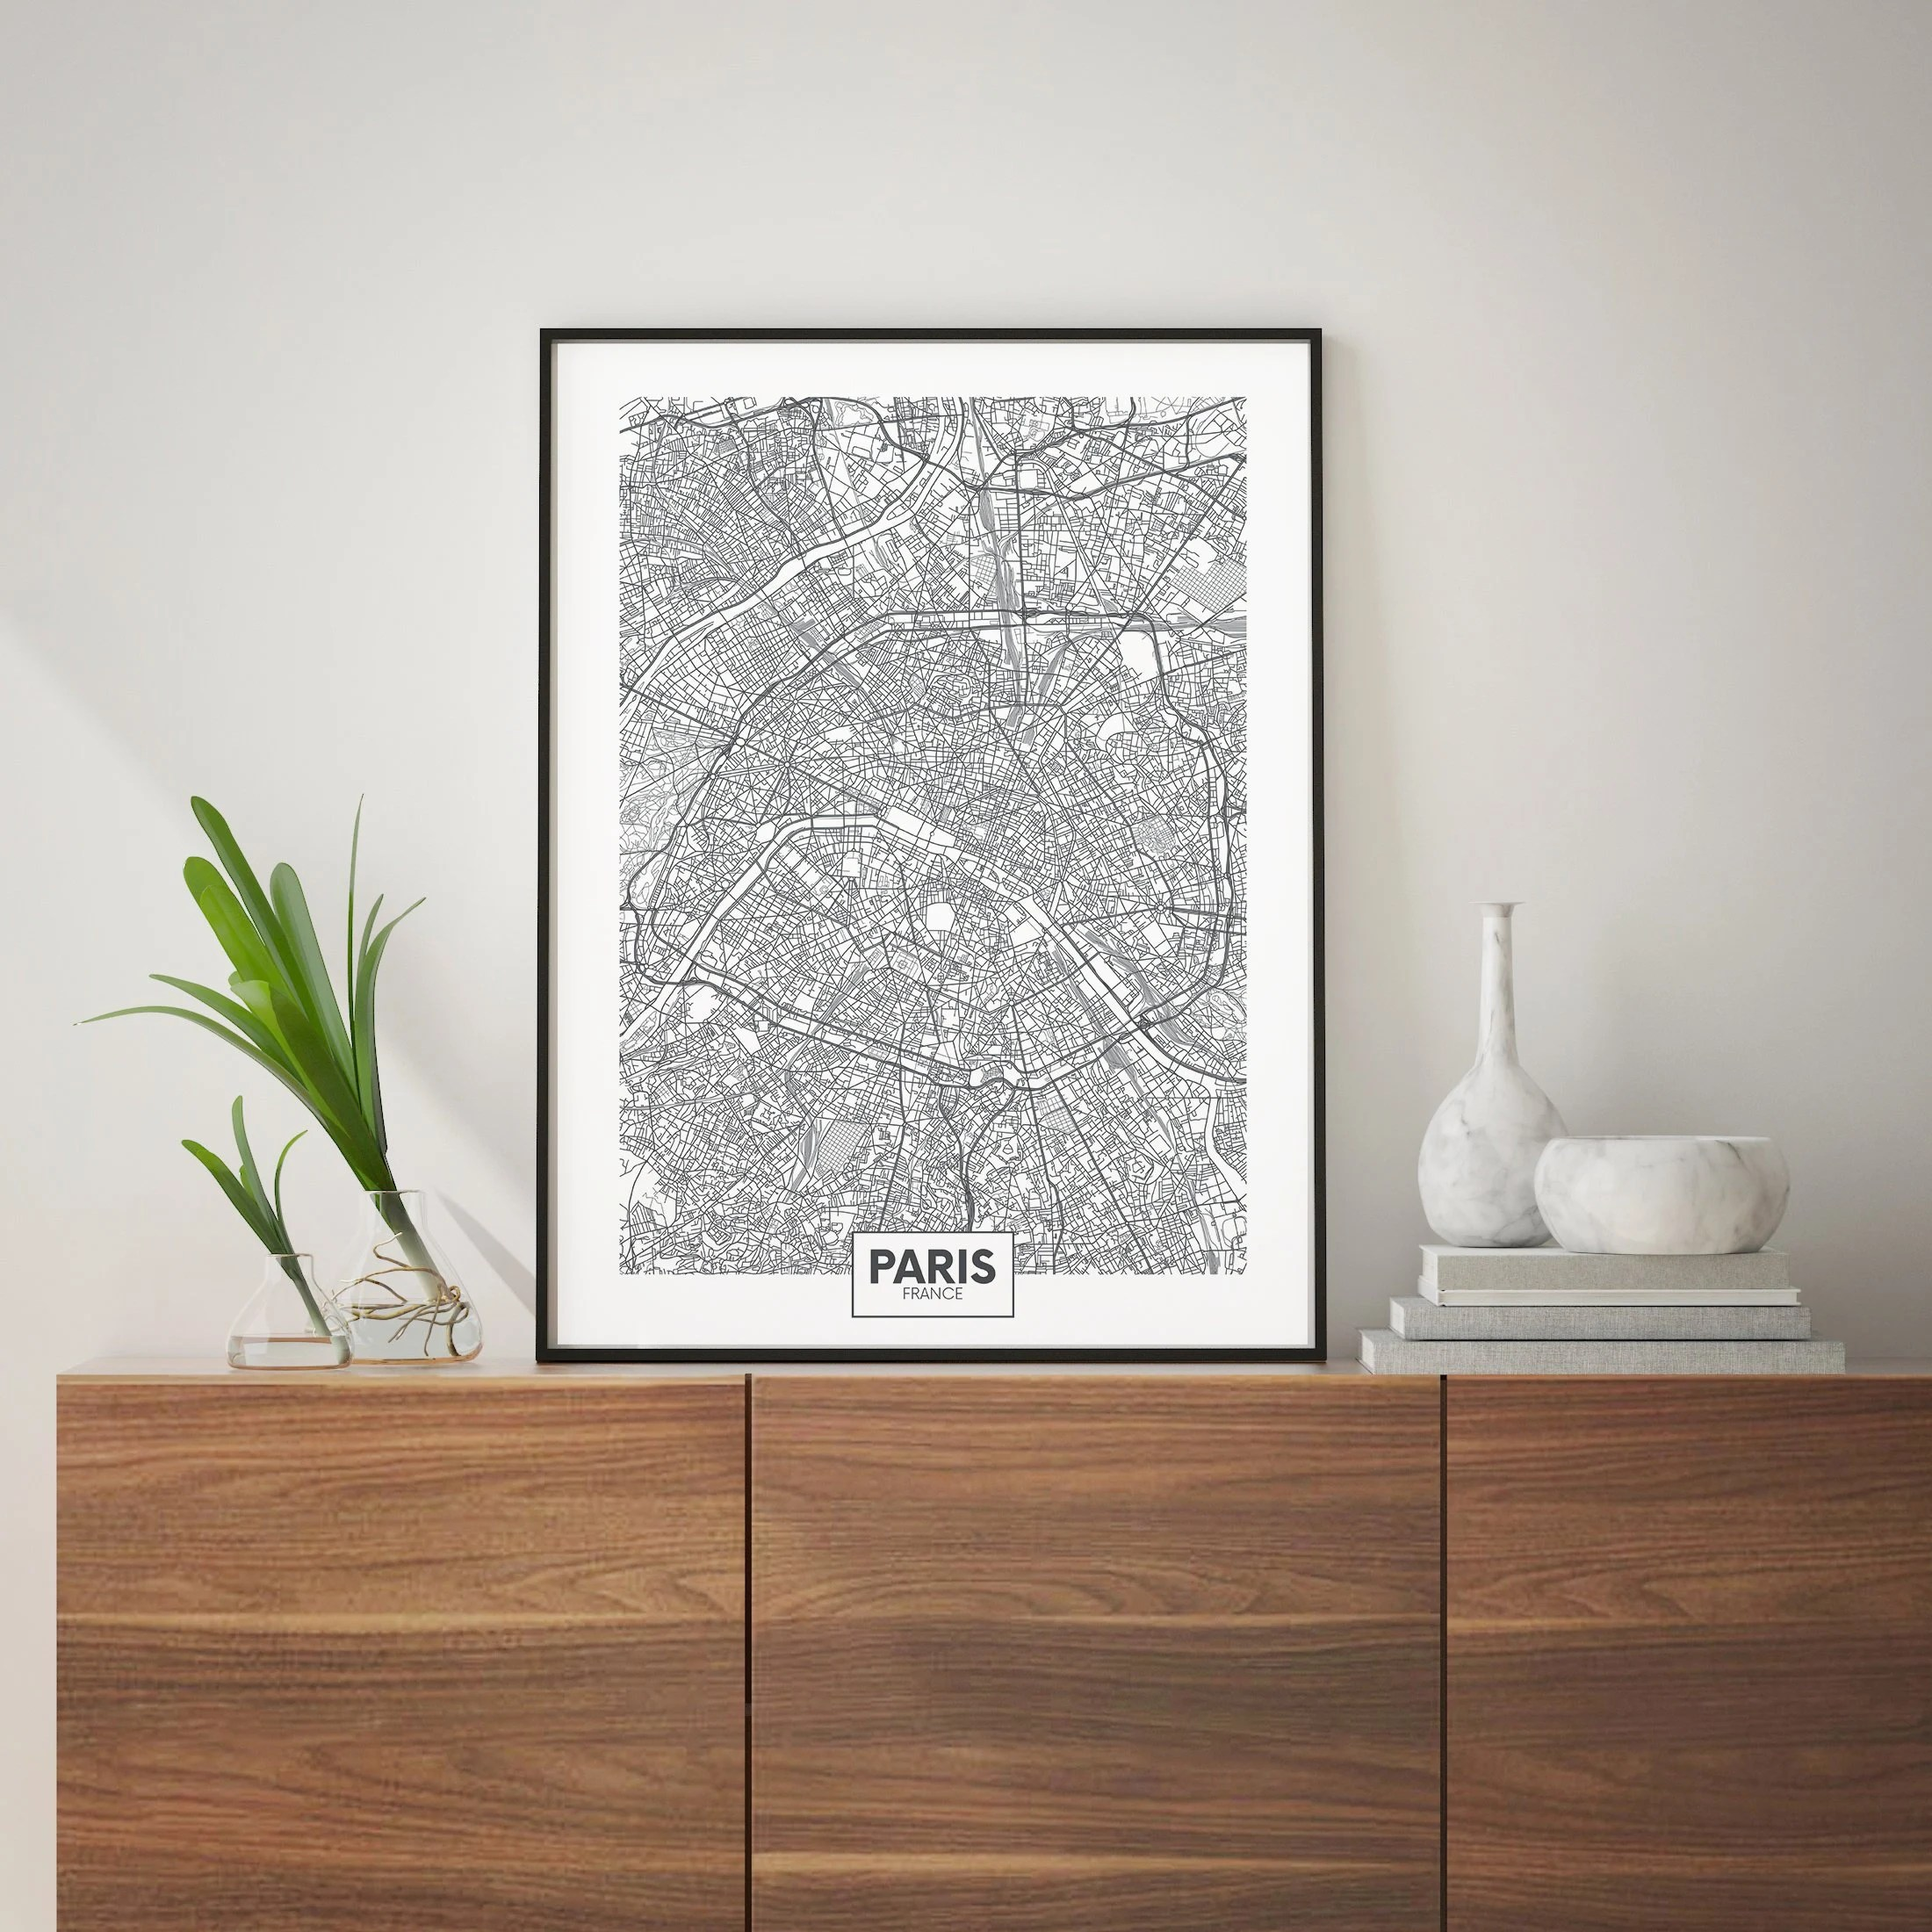 Paris map Paris art France artDigital map artDigital Etsy